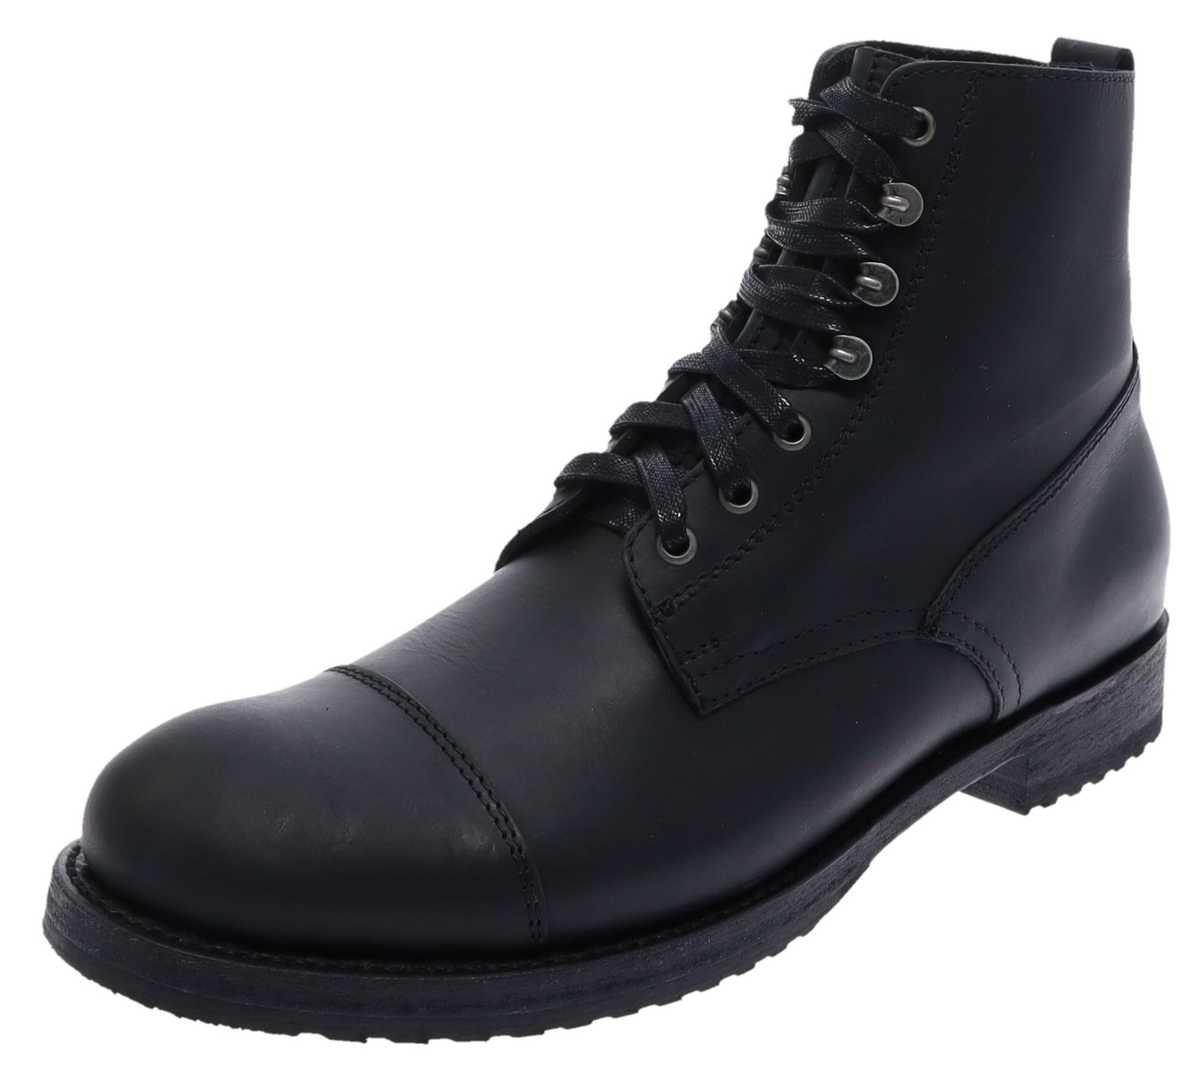 Sendra Boots 9049 Sprinter Negro Urban Boot Lace-up boots - black